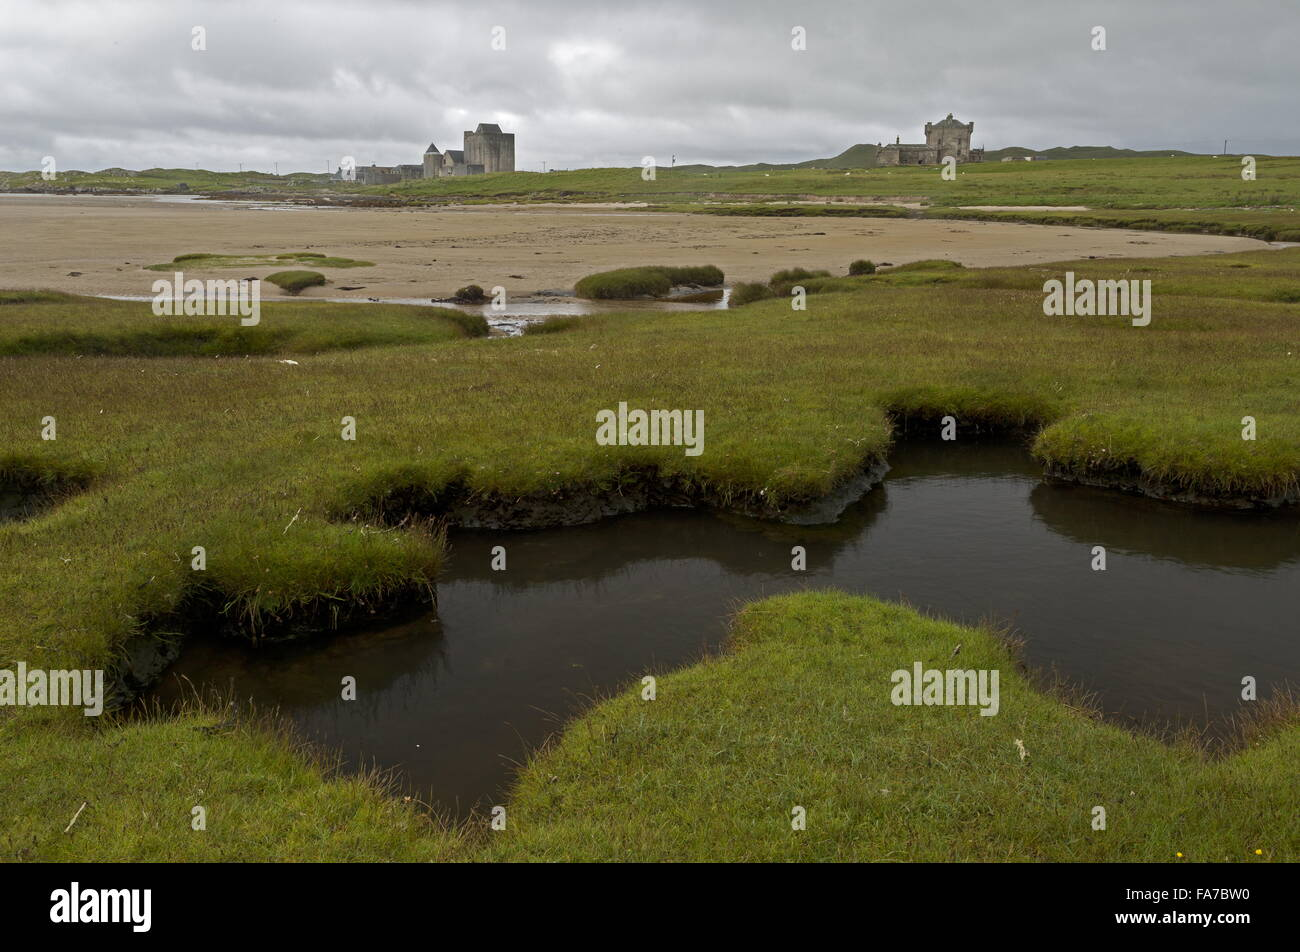 Looking across saltmarsh to the castles of Breachacha, the island of Coll, Inner Hebrides, Scotland. - Stock Image